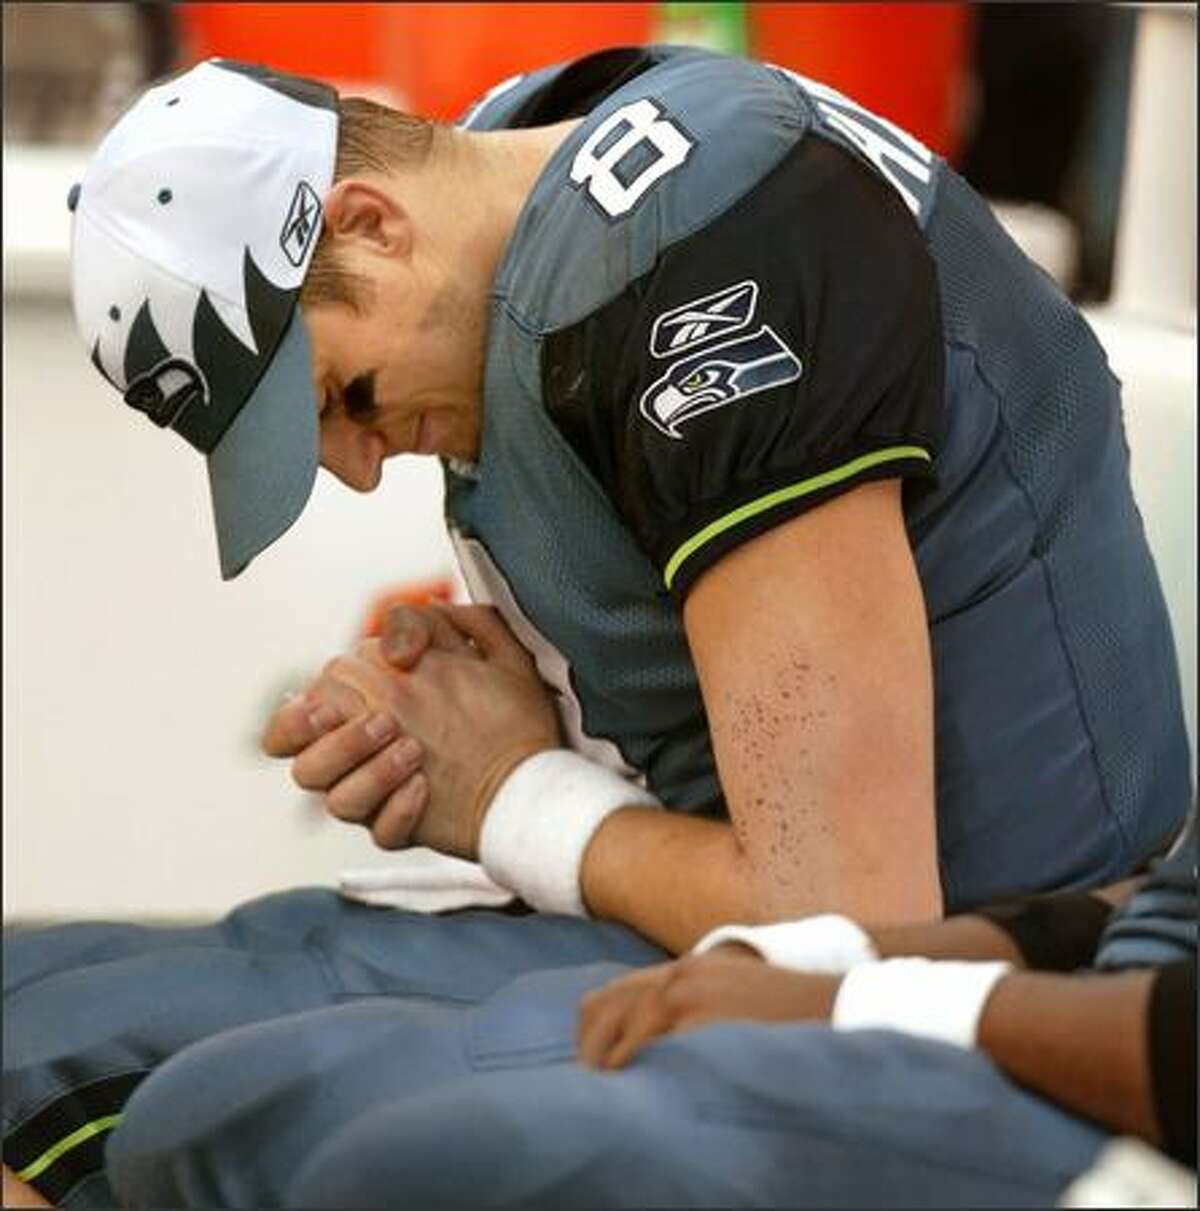 Seattle Seahawks Matt Hasselbeck holds his injured hand after walking off the field with 6:17 left in the second quarter.